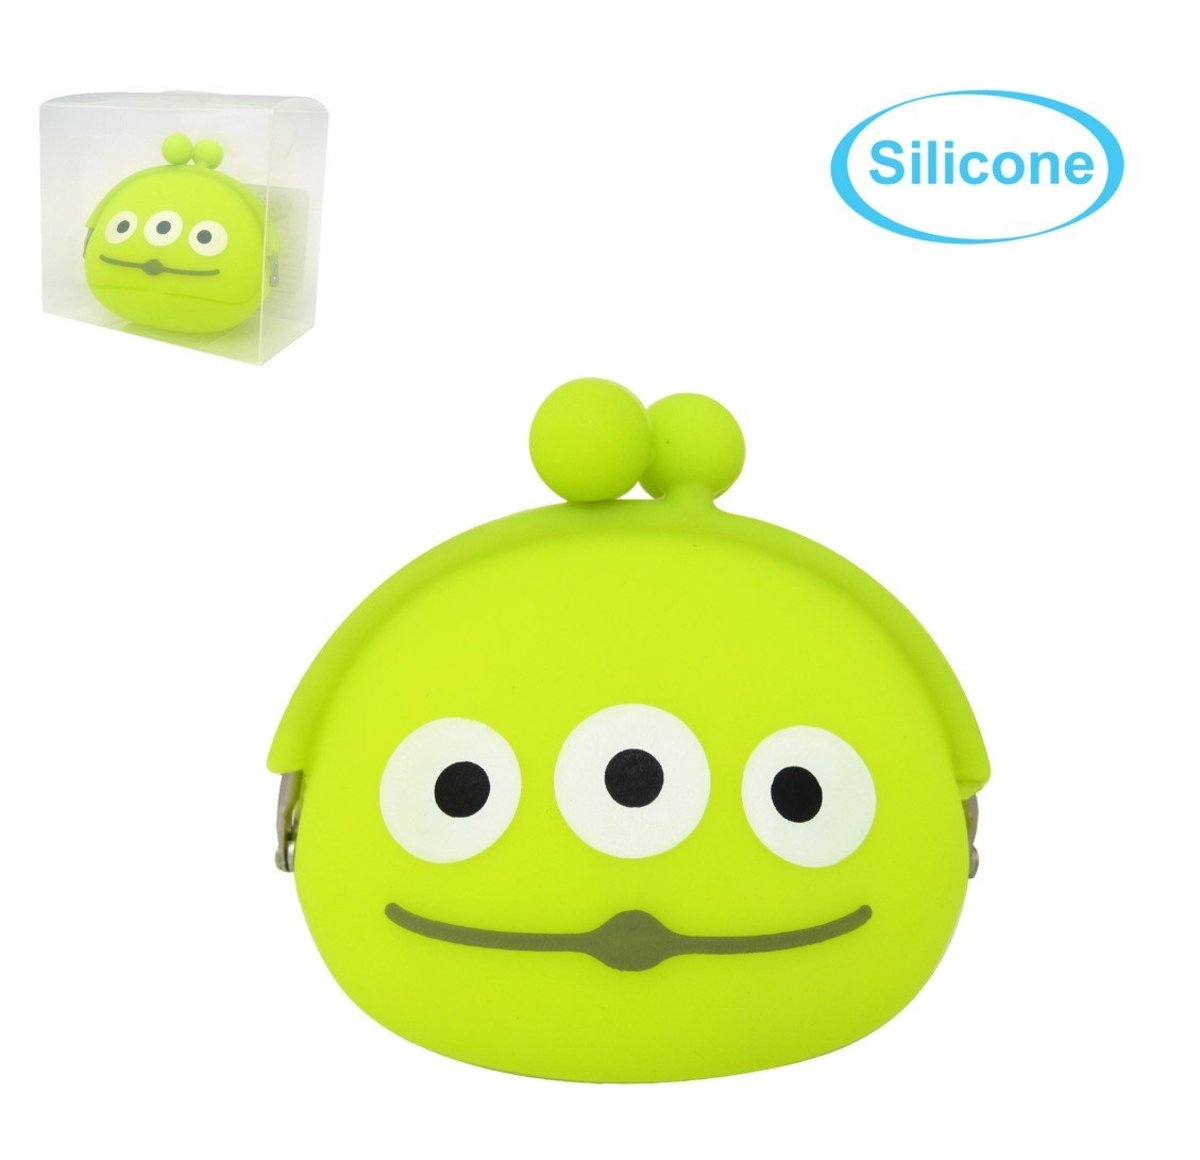 Silicone Coin Purse(Alien)(Licensed by Disney)